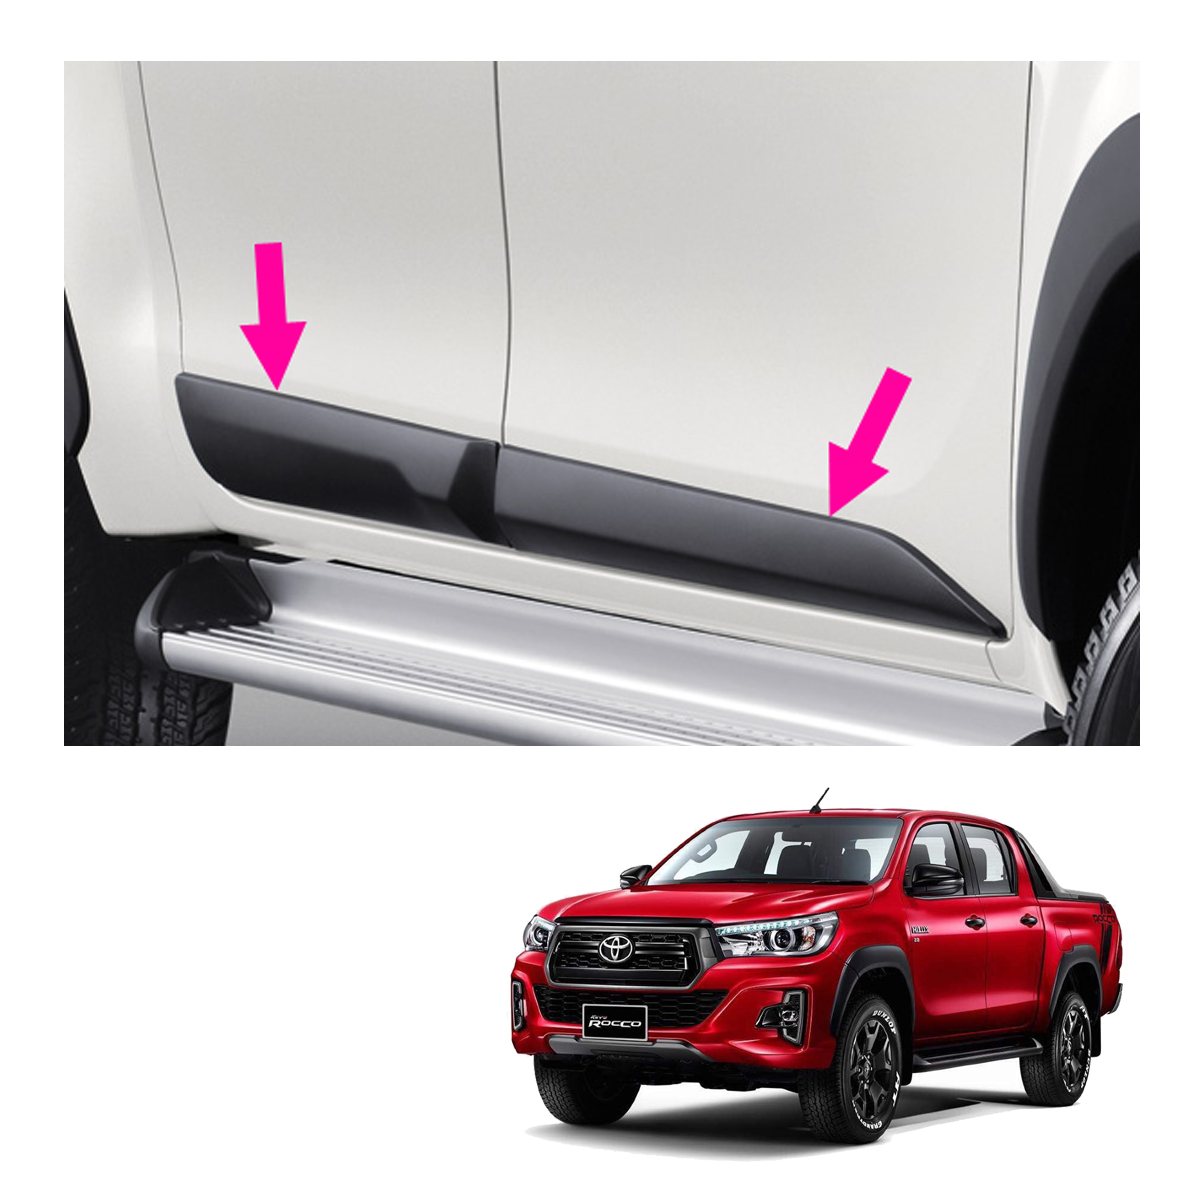 Side Molding Guard Matte Black 4 Pc Fit Toyota Hilux Revo SR5 4 Door 2015-2017